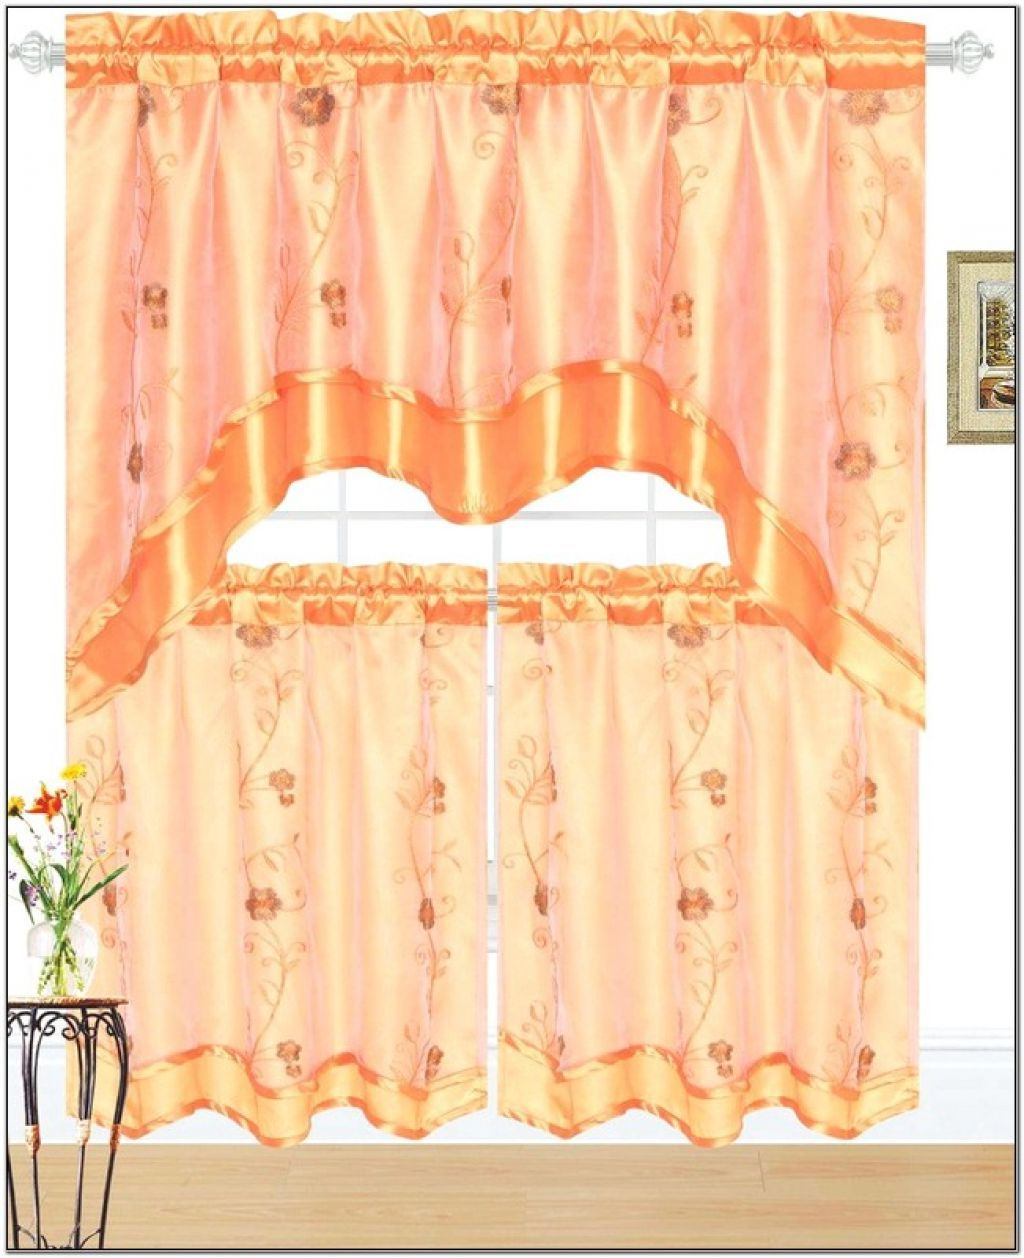 Jcpenney Kitchen Curtain Stylish Drape For Cooking Space Homesfeed